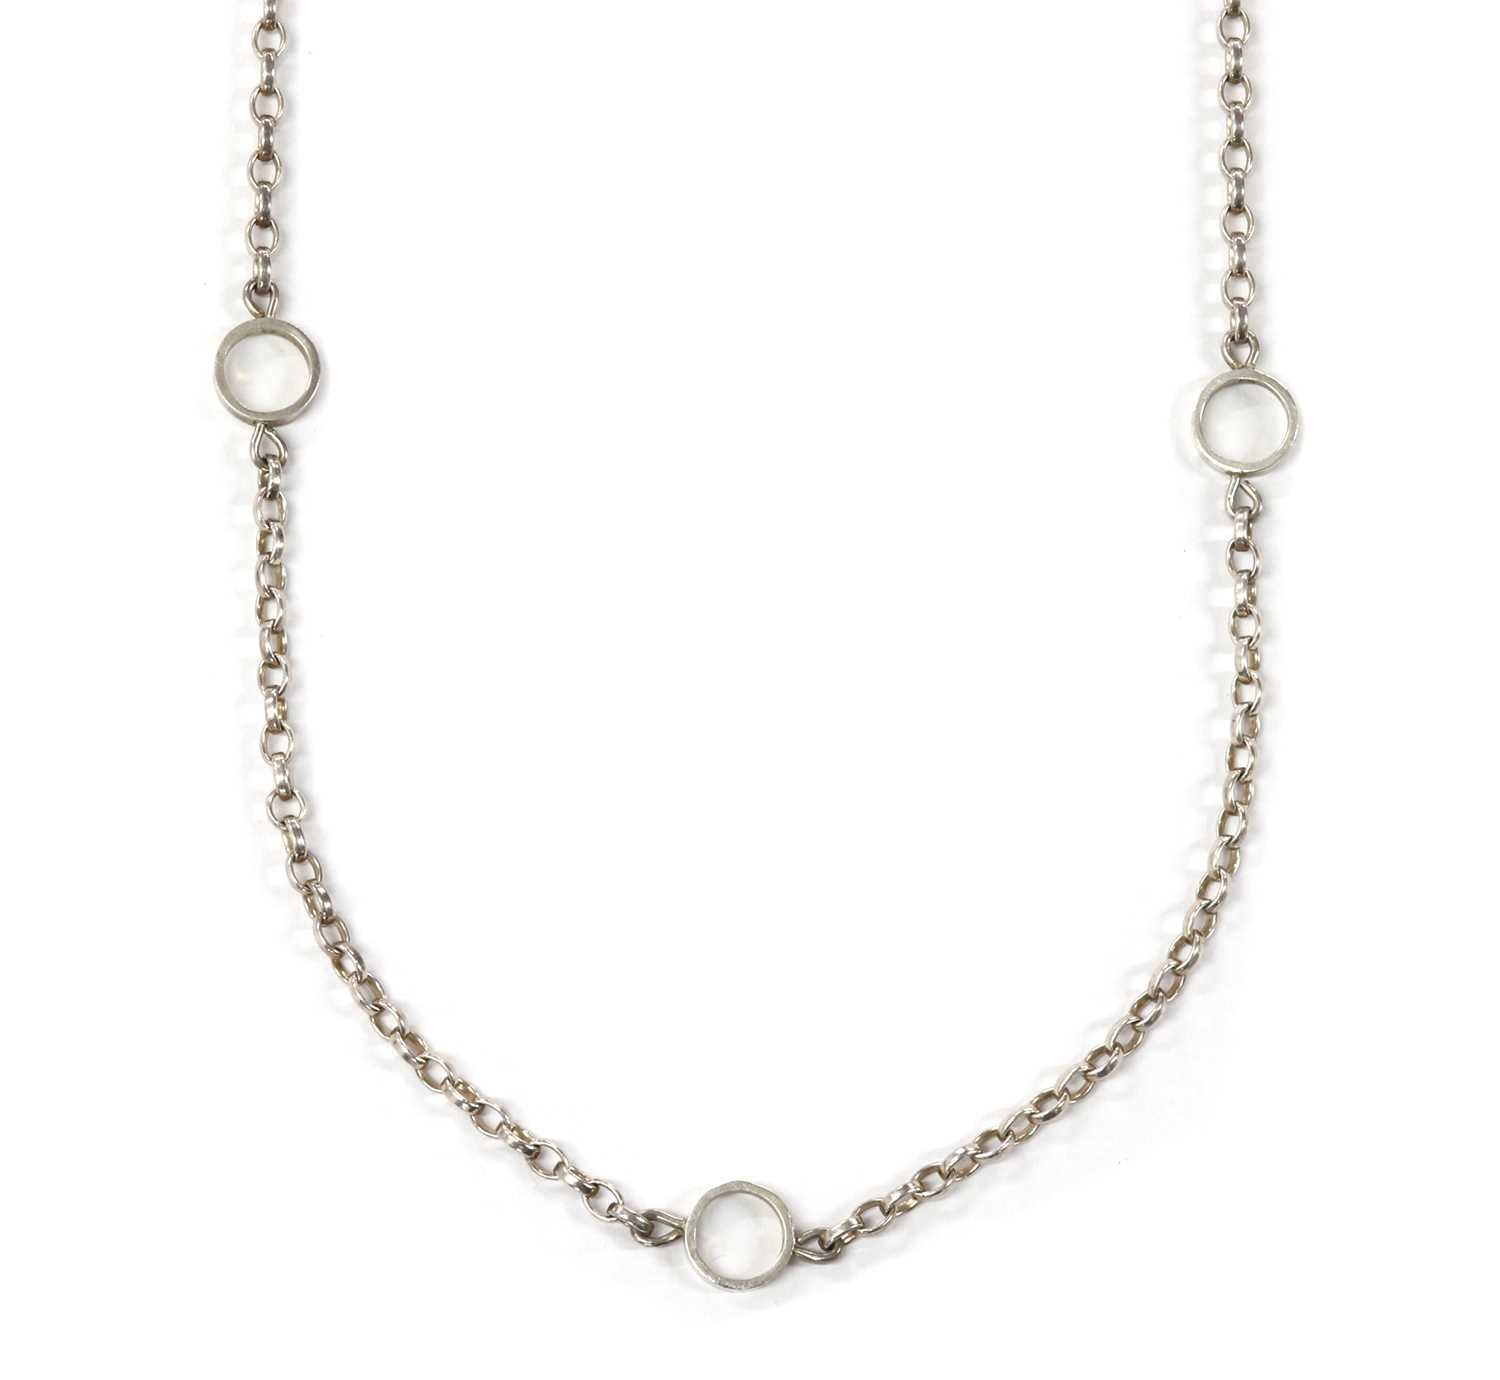 A sterling silver necklace,